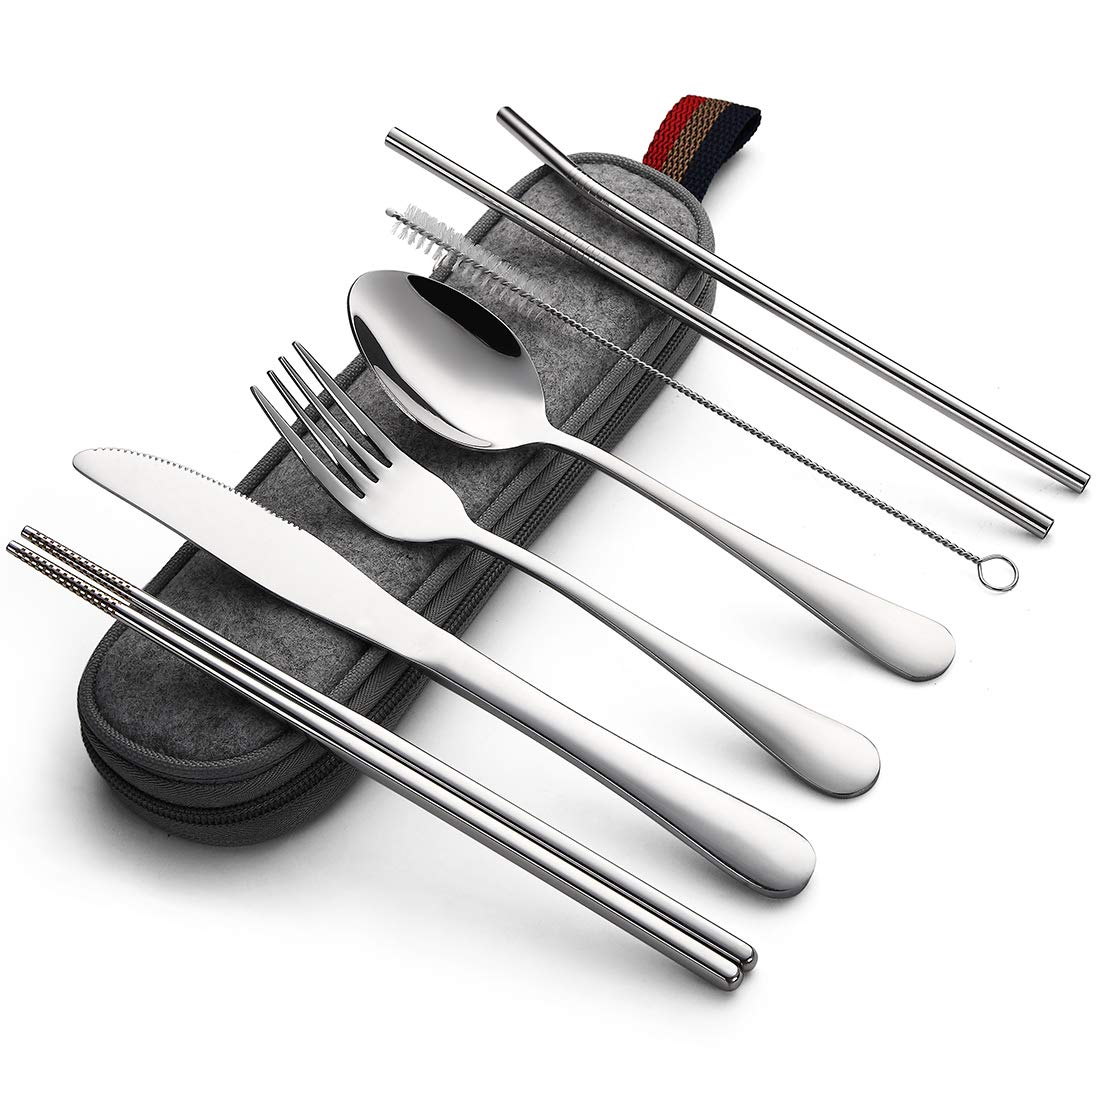 Devico Portable Utensils